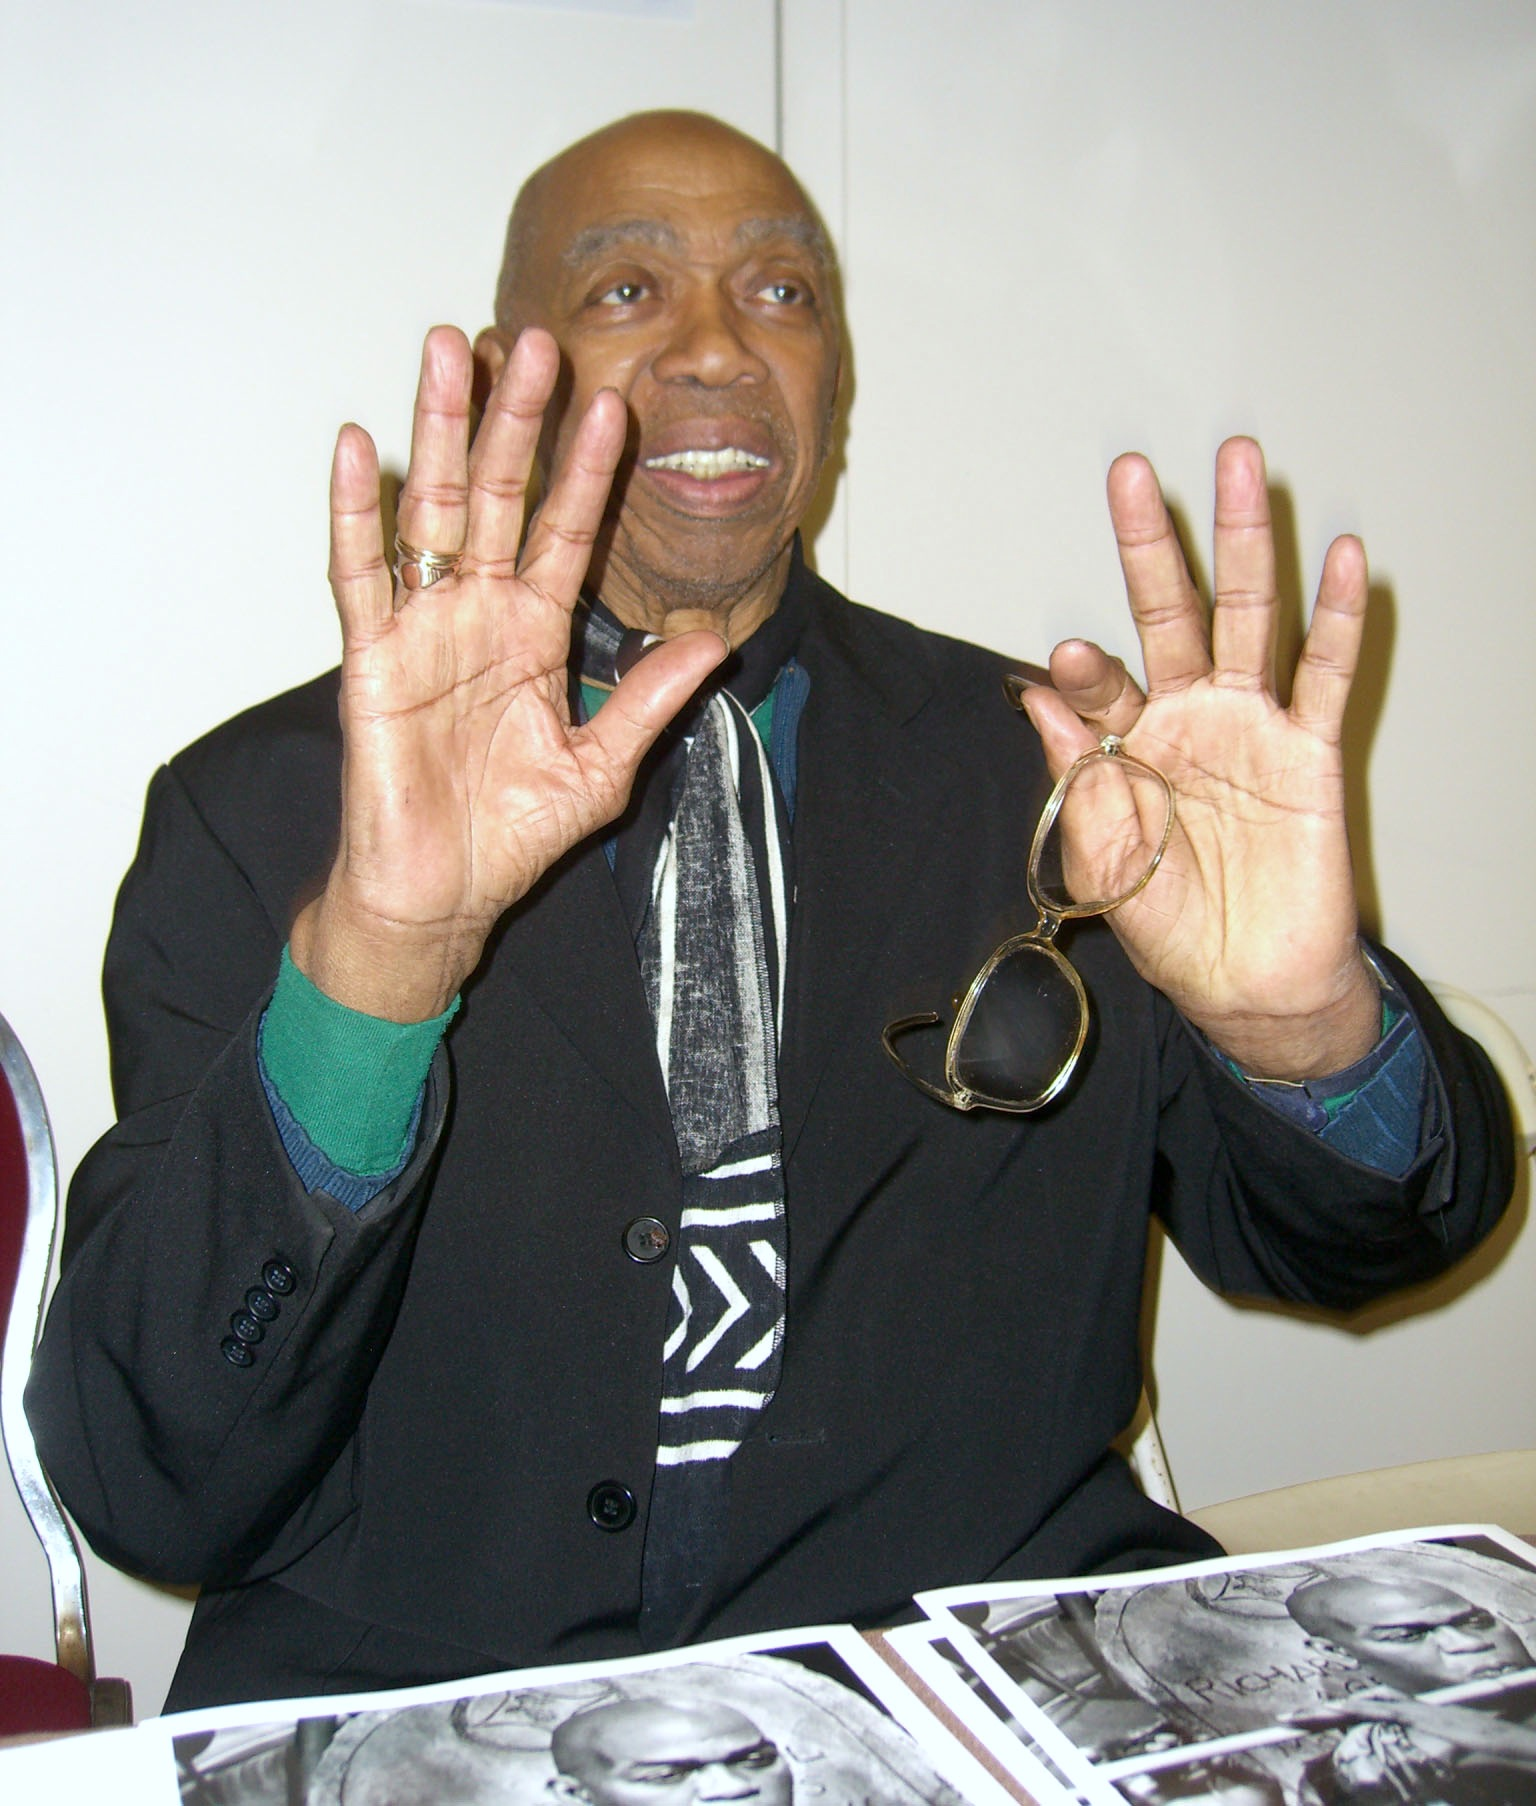 Geoffrey Holder - Wikipedia